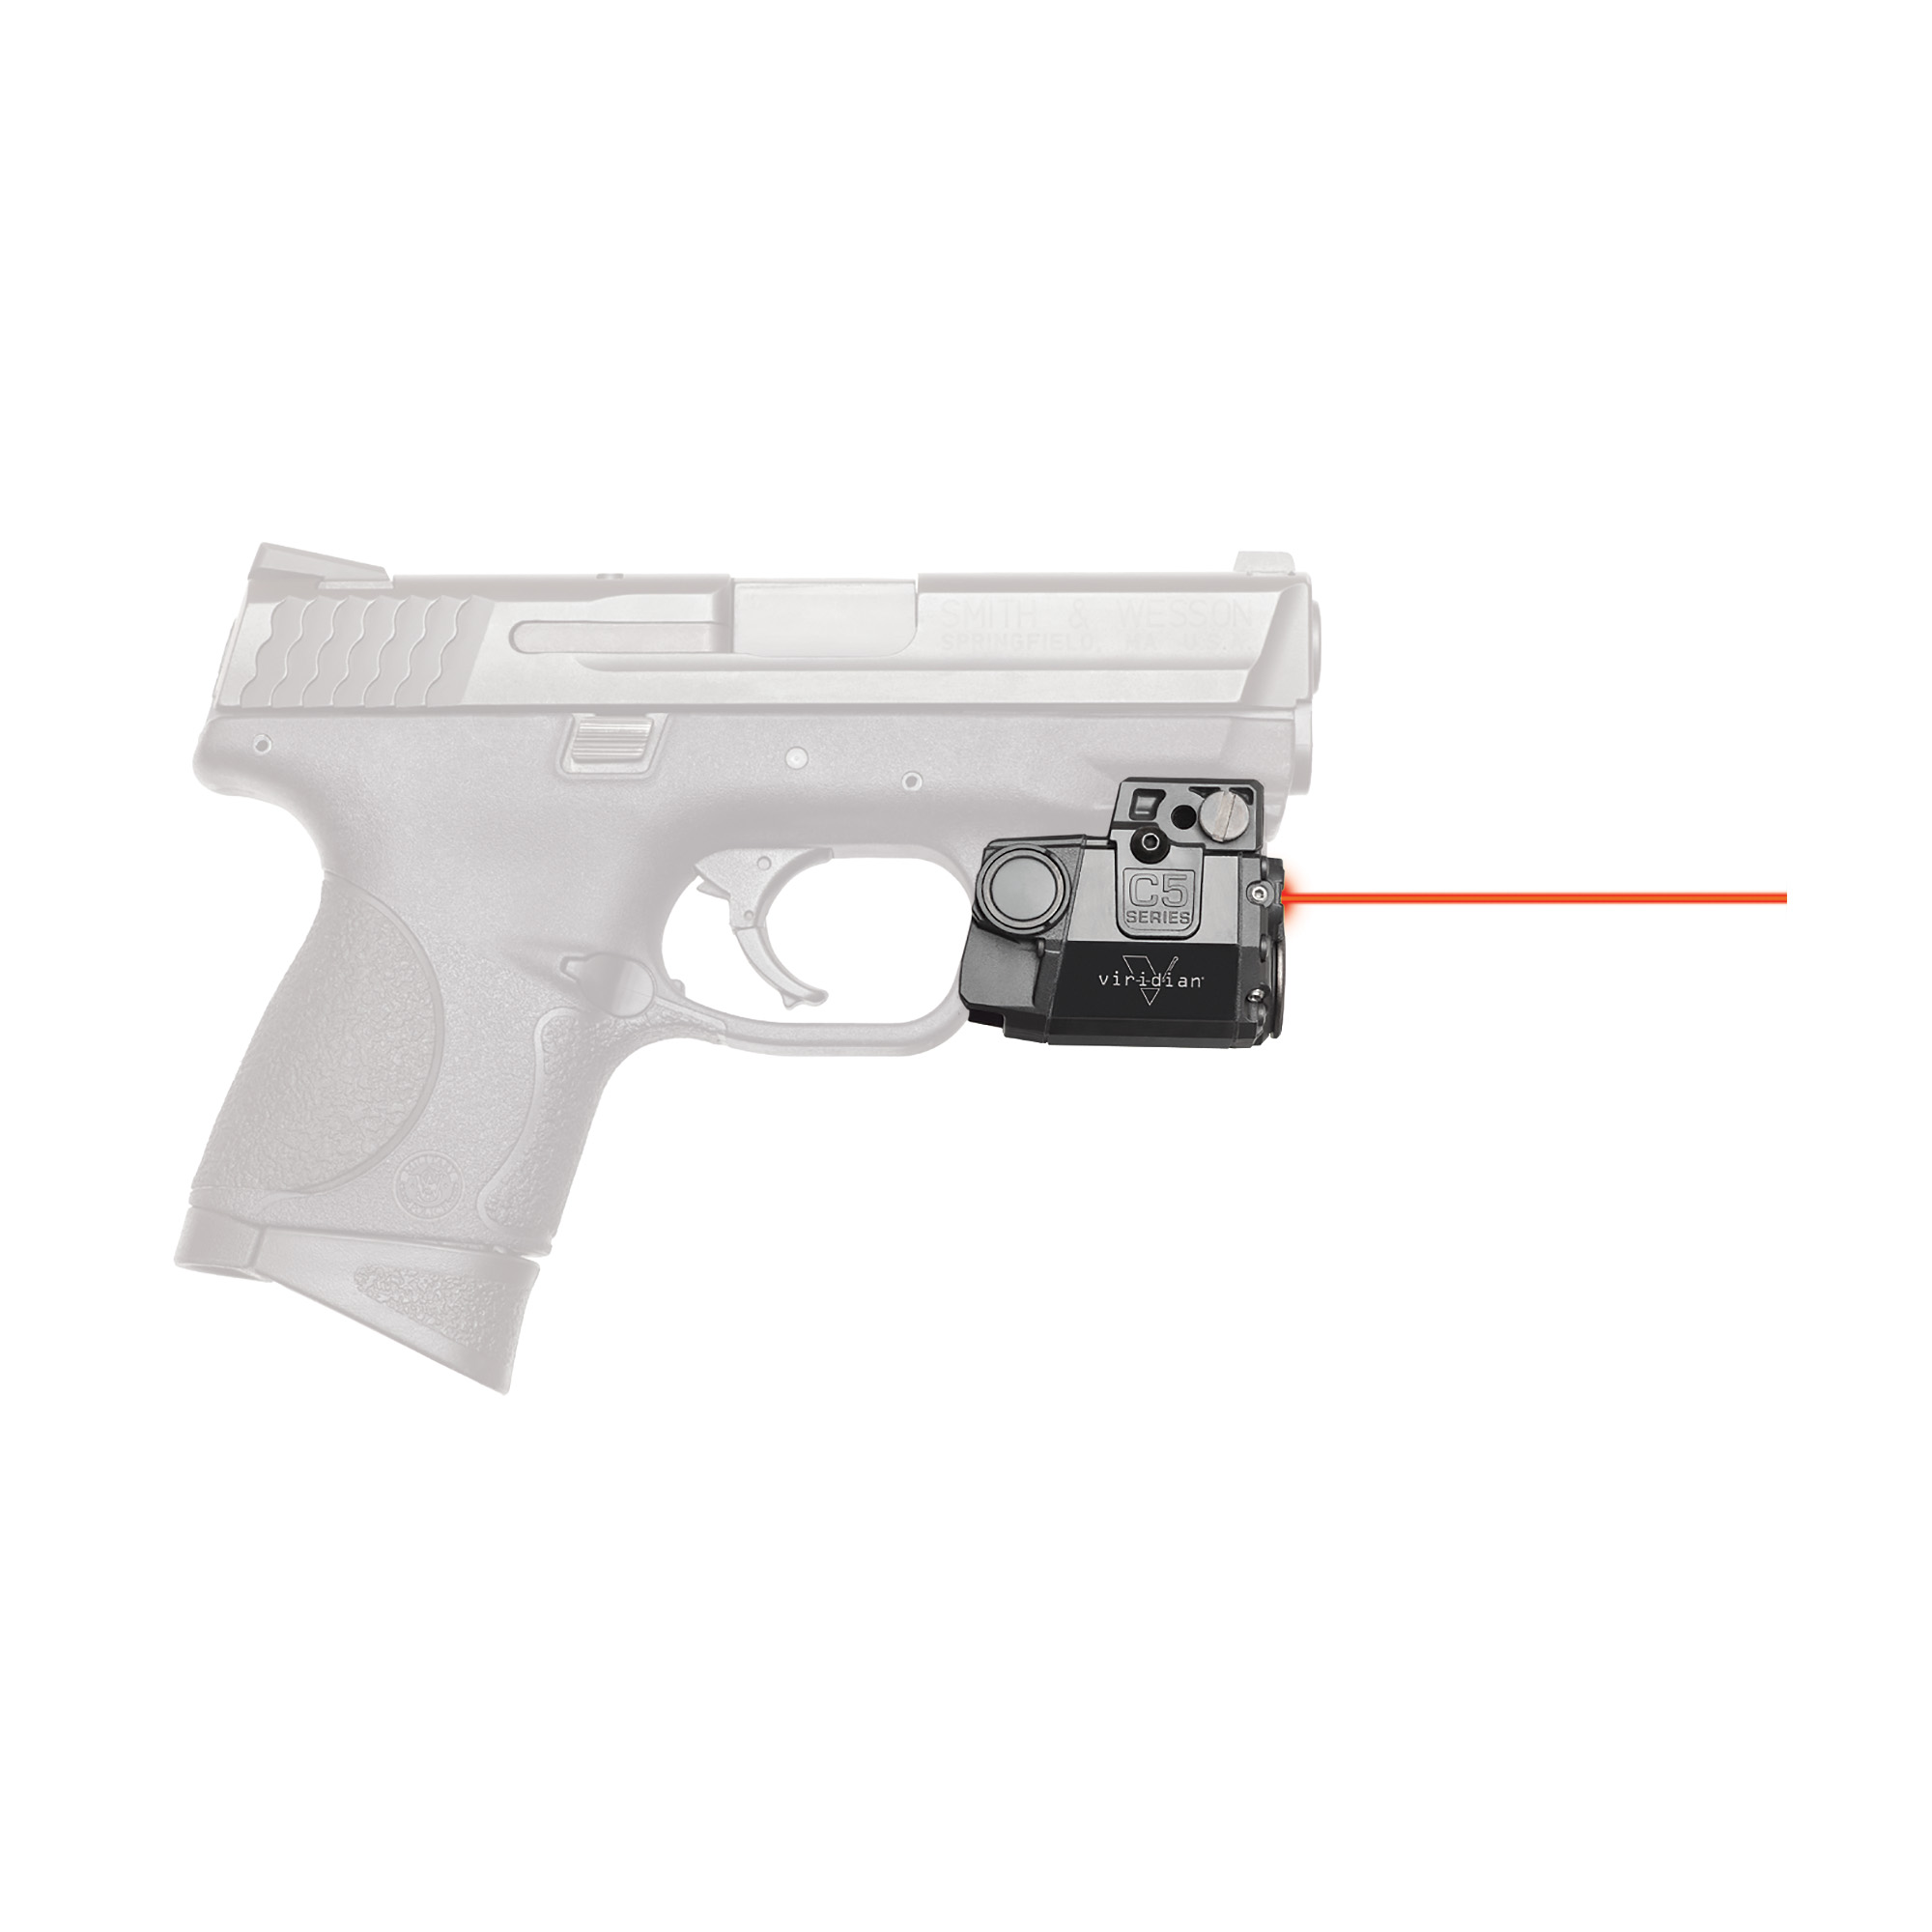 "The Viridian C5-R red laser sight is so tiny"" it tucks neatly between trigger guard and muzzle"" with no overhang"" and will work with virtually any railed gun. This C5-R features the brightest red laser allowed by law with multiple modes of operation and easy windage/elevation adjustment. Viridian's C5-R is equipped with INSTANT-ON(R) activation. When paired with a TacLoc holster (sold separately)"" you can ignite your green laser and tactical light instantly when you draw your weapon. When you draw it's on. The C5L features a 500 lumen tactical light with CREE LED in constant and strobe modes. It comes standard with RADIANCE(R) taclight technology"" which expands light into a wider beam"" revealing over twice the horizontal area of conventional tactical lights. With no wasted light above or below your target area"" you get a better picture"" faster discovery"" smoother tracking and more positive targeting than any other weapon-mounted tool."